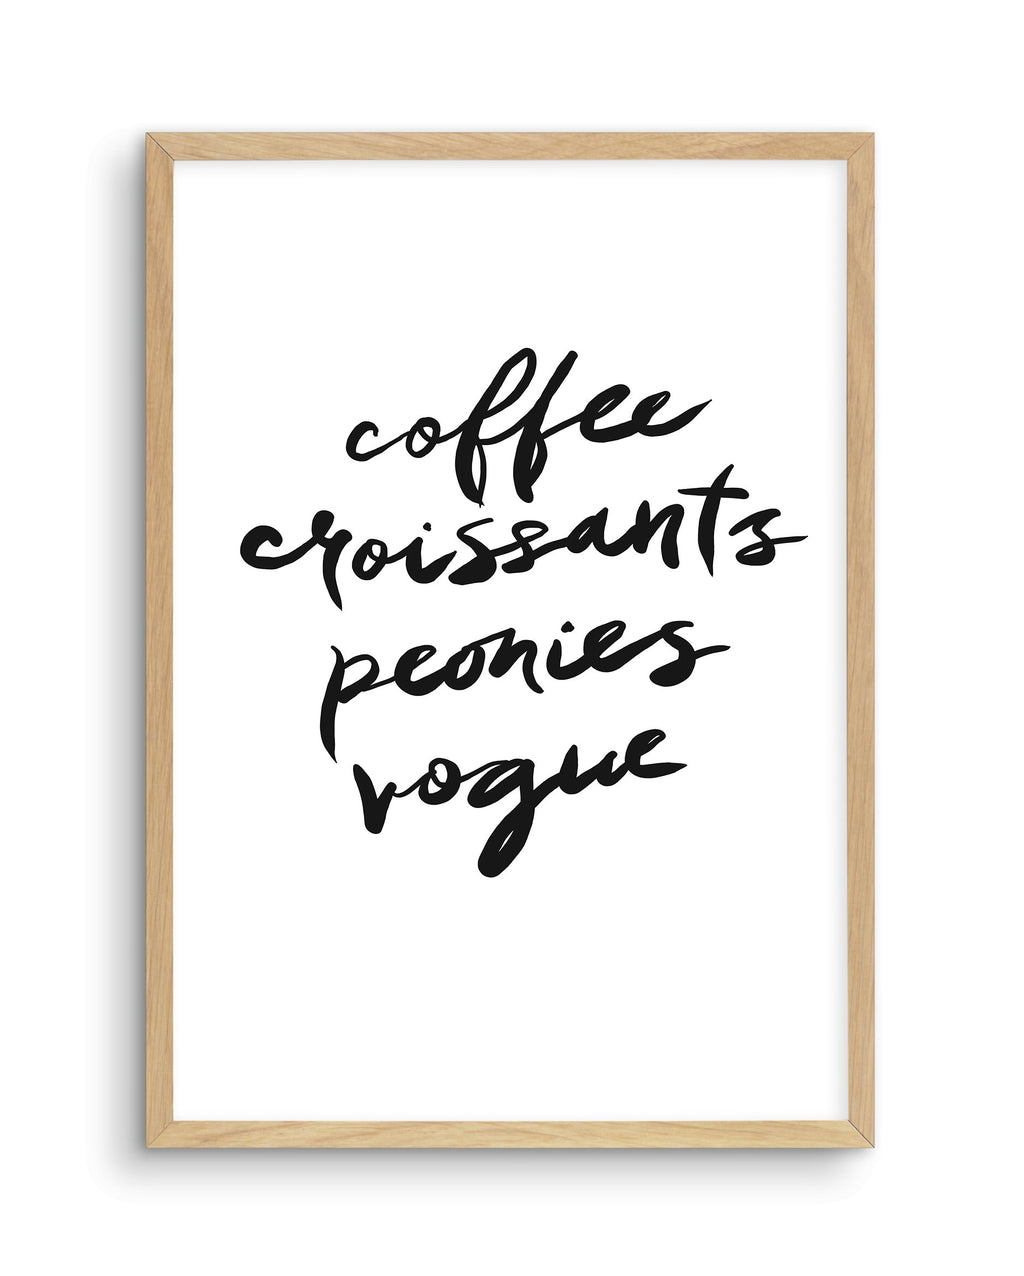 Coffee Croissants Peonies Vogue - Olive et Oriel | Shop Art Prints & Posters Online